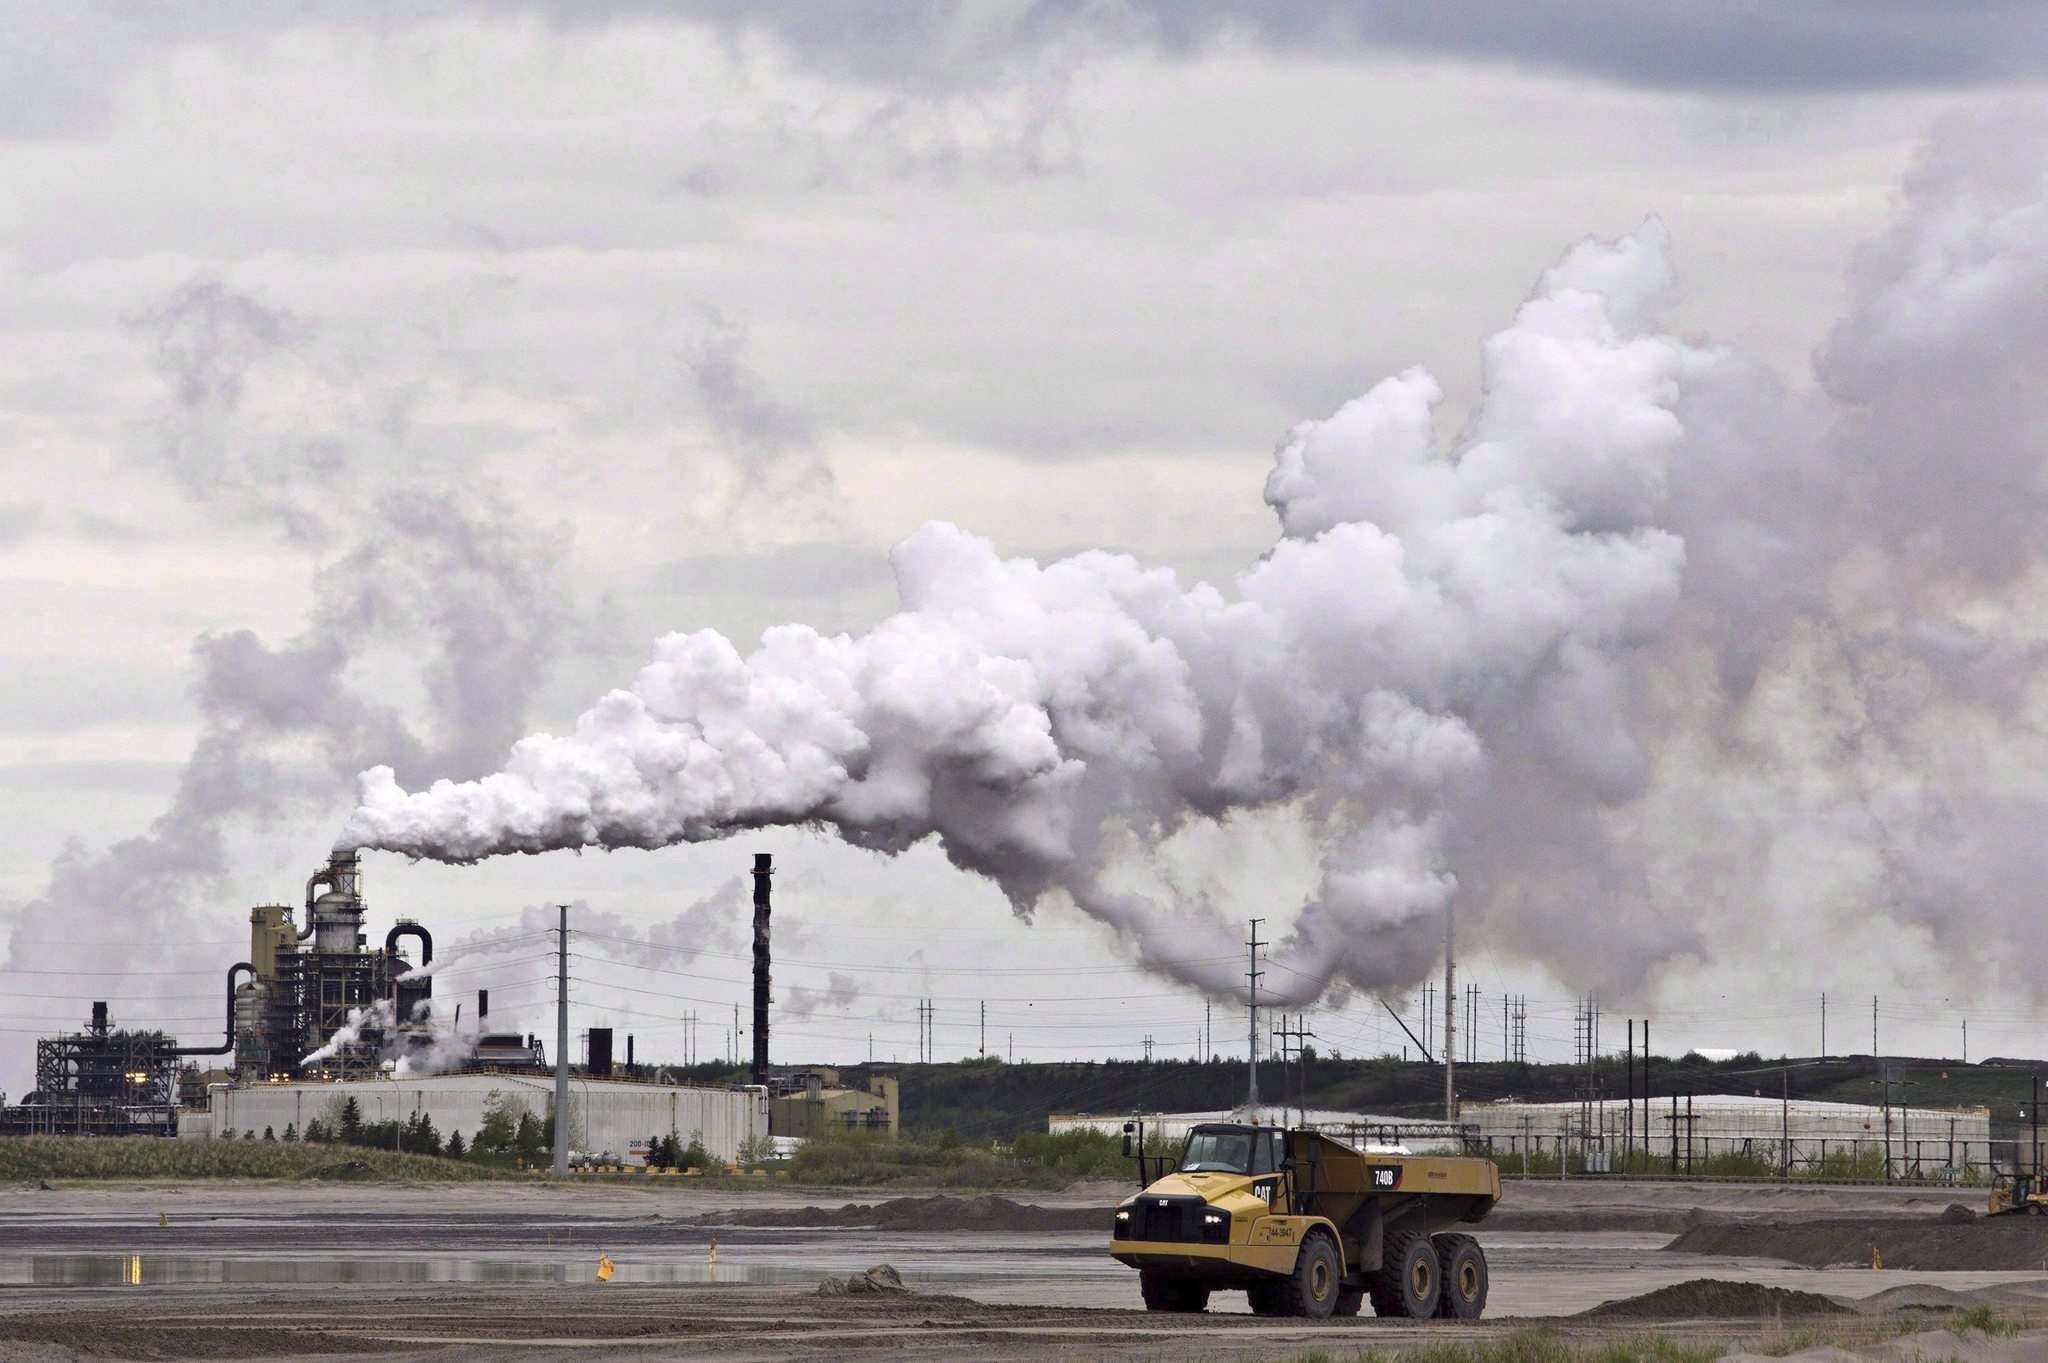 A complete shutdown of oilsands production is among the controversial proposals for Canada in its pursuit of Paris Agreement goals.